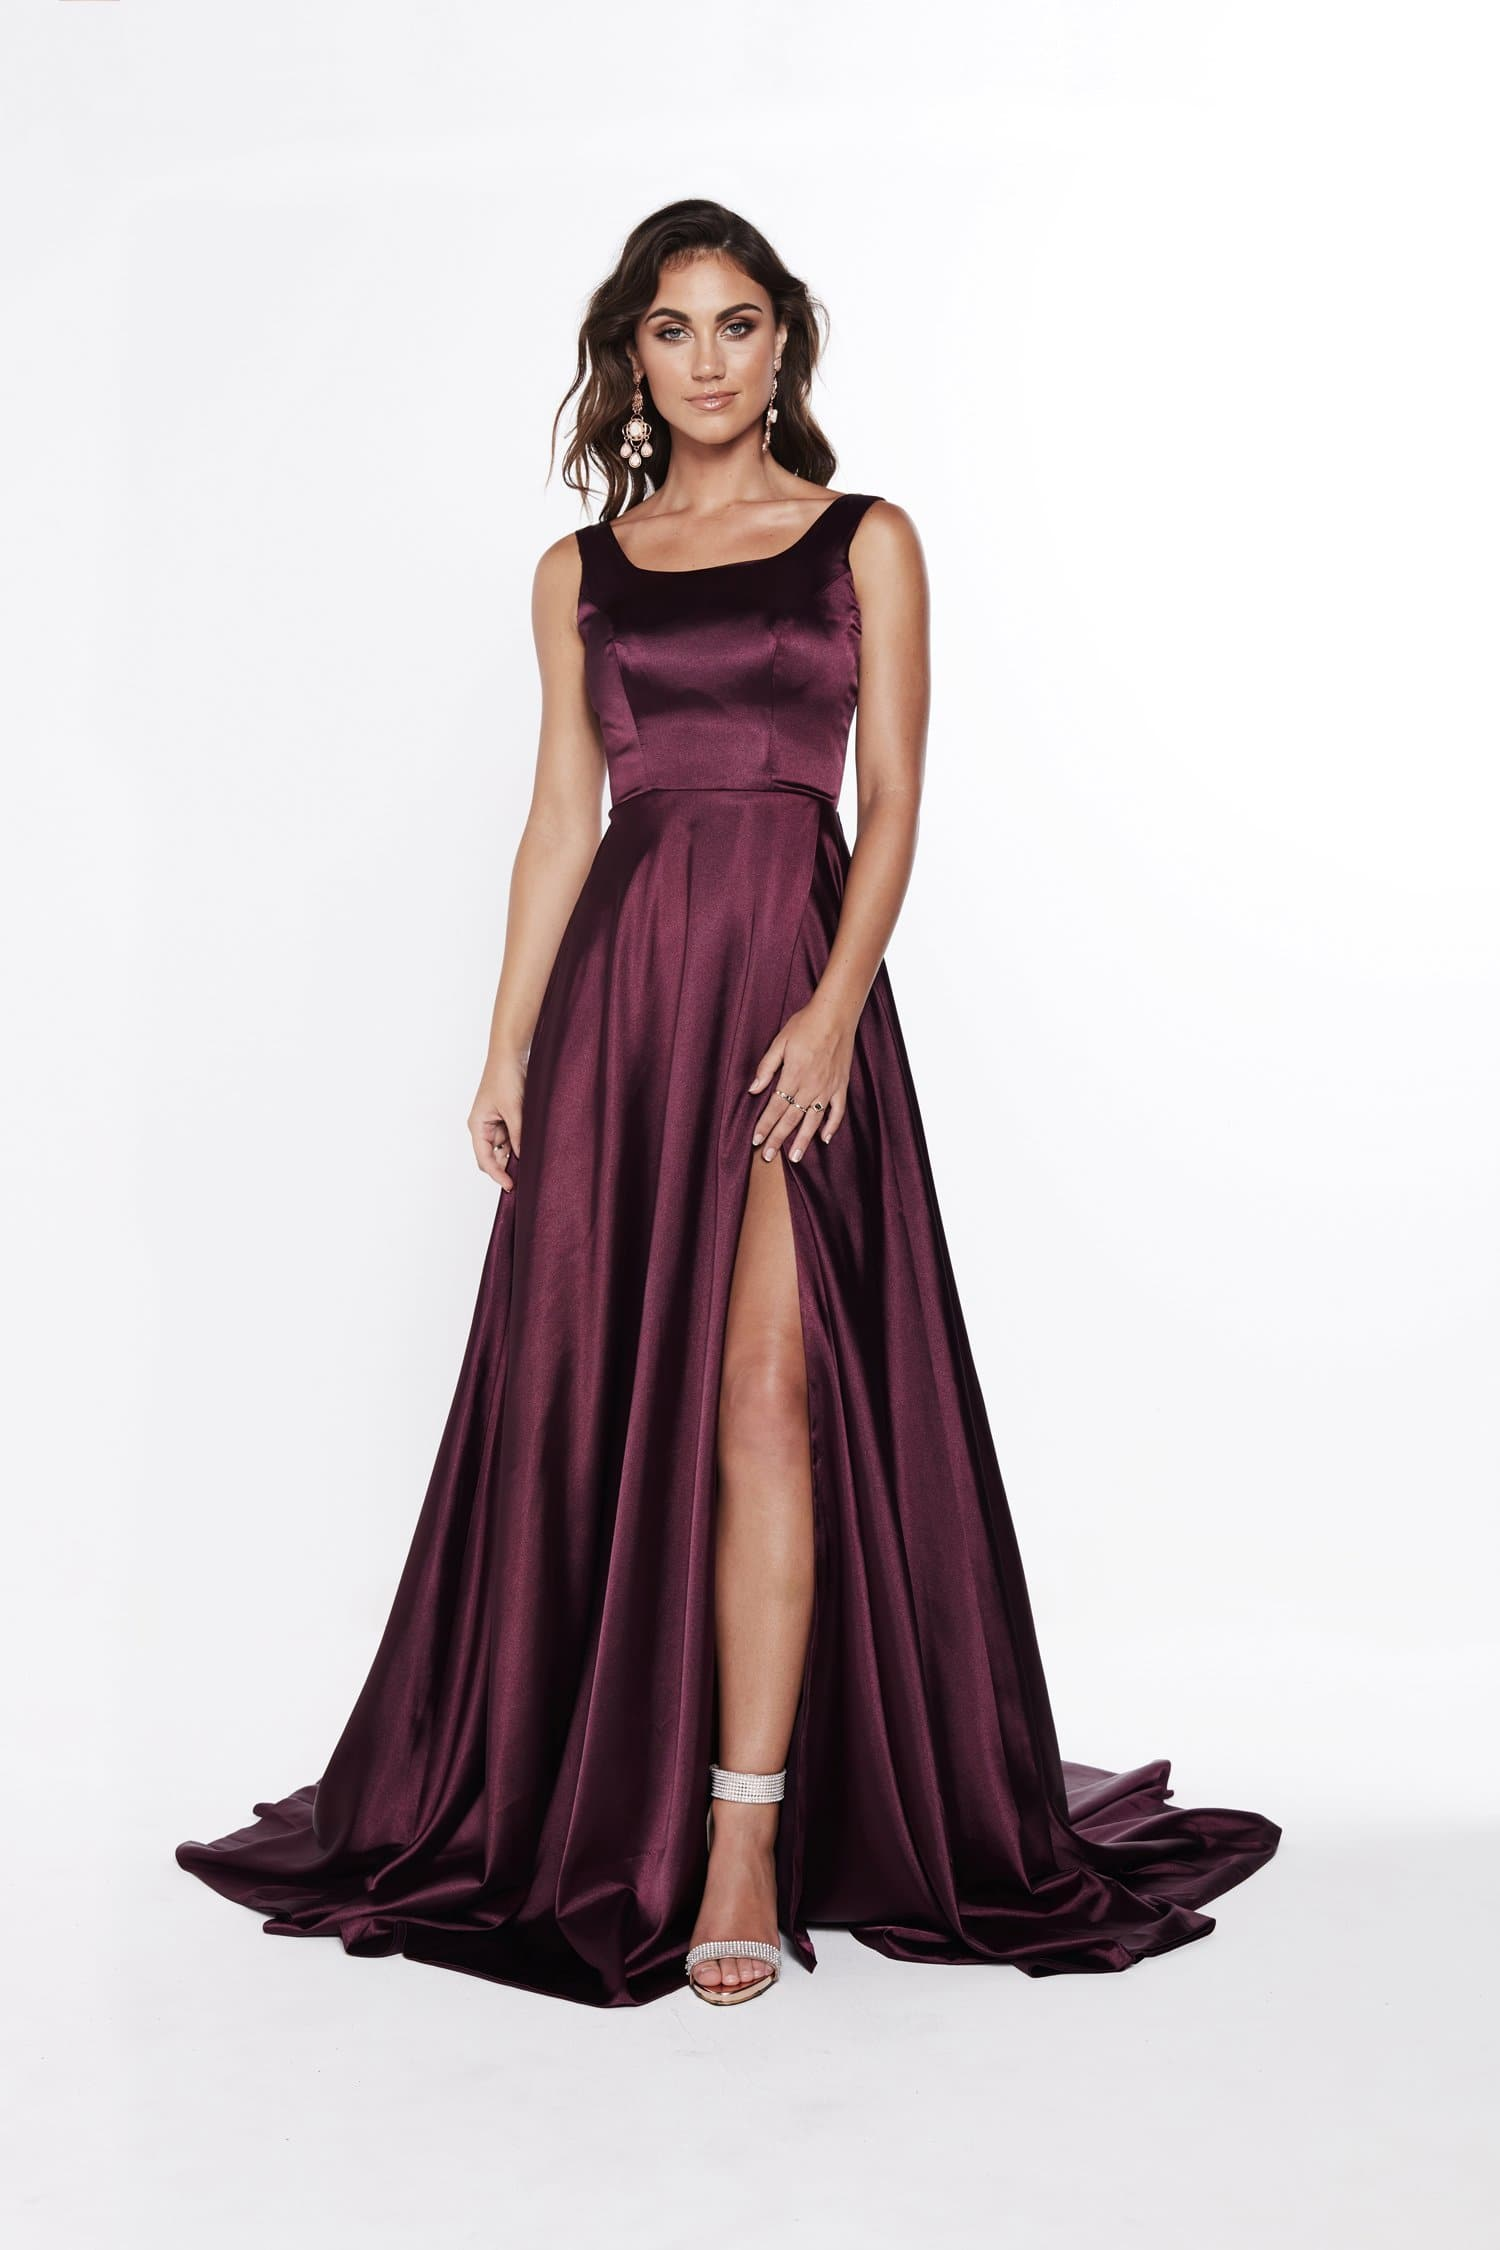 A&N Paola - Violet Satin Gown with High Neckline and Side Slit